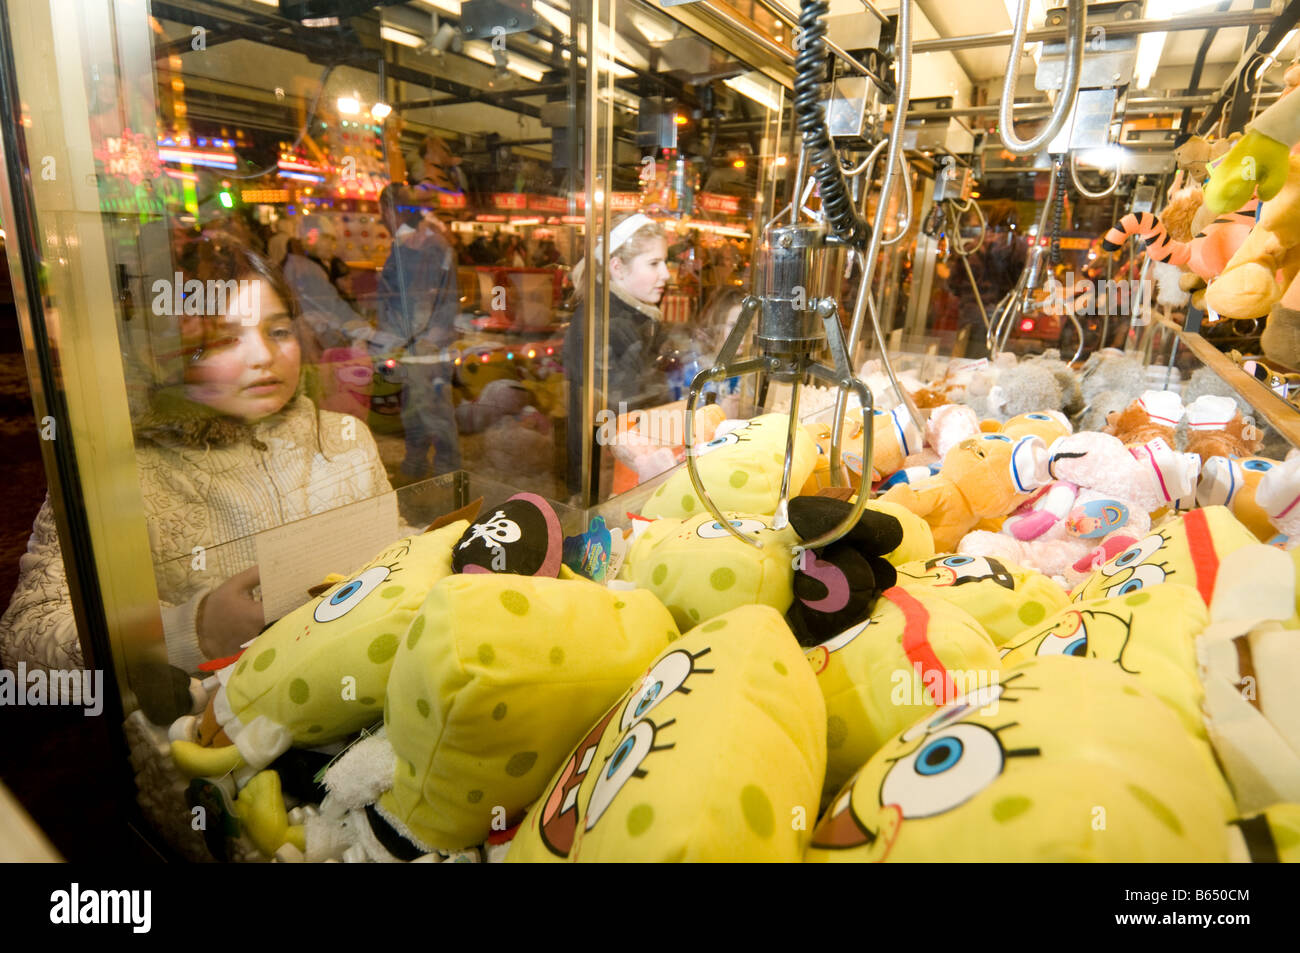 A young girl trying to win a soft toy prize on a fairground amusement arcade mechanical grab grabber game, UK - Stock Image